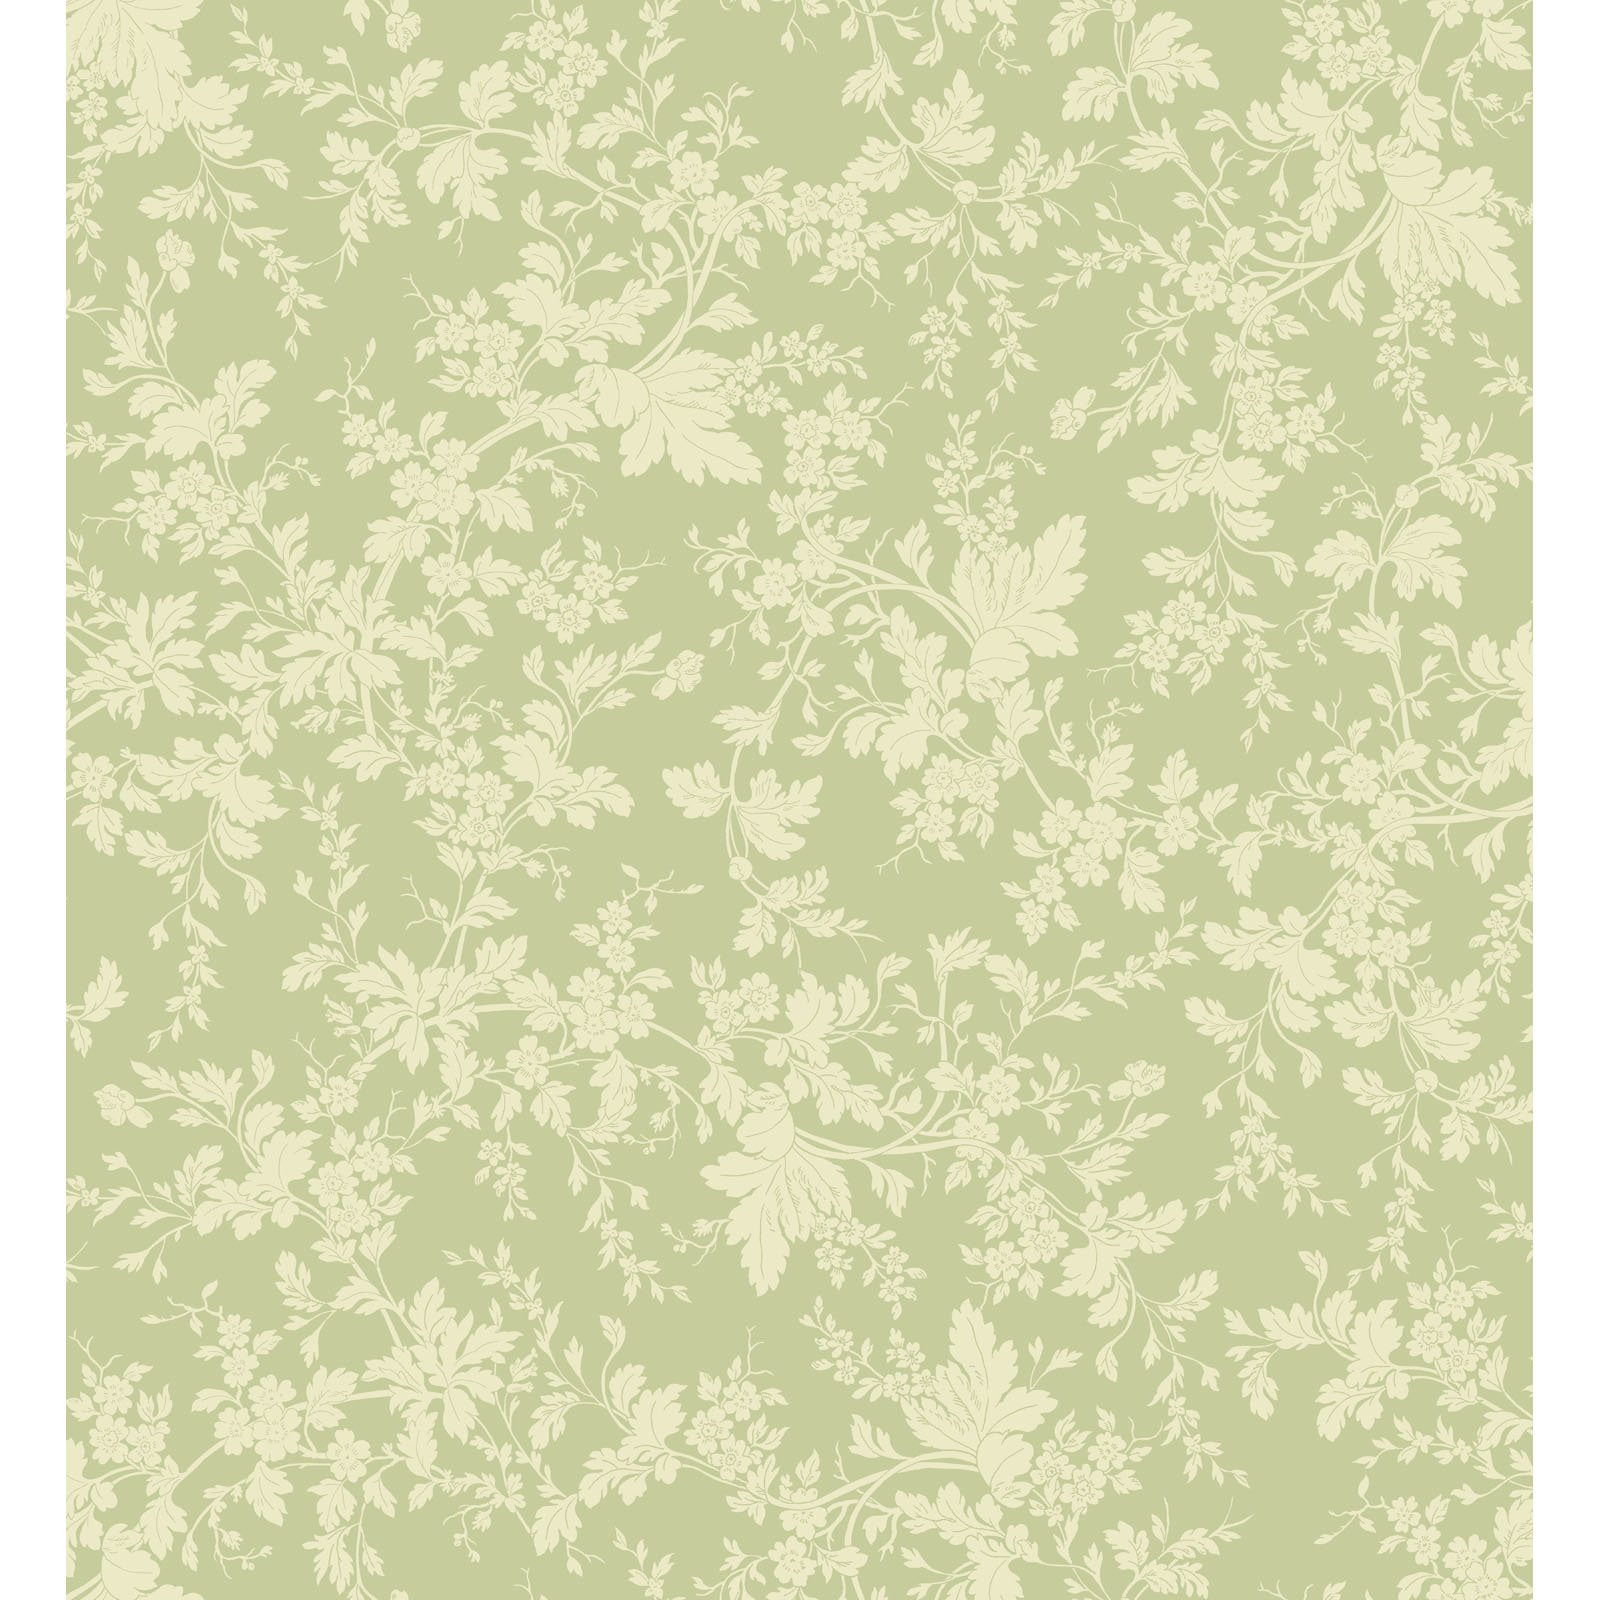 EESC-9875 G - BELLE EPOQUE BY MAYWOOD STUDIO FLORAL DAMASK GREEN - ARRIVING JANUARY 2021